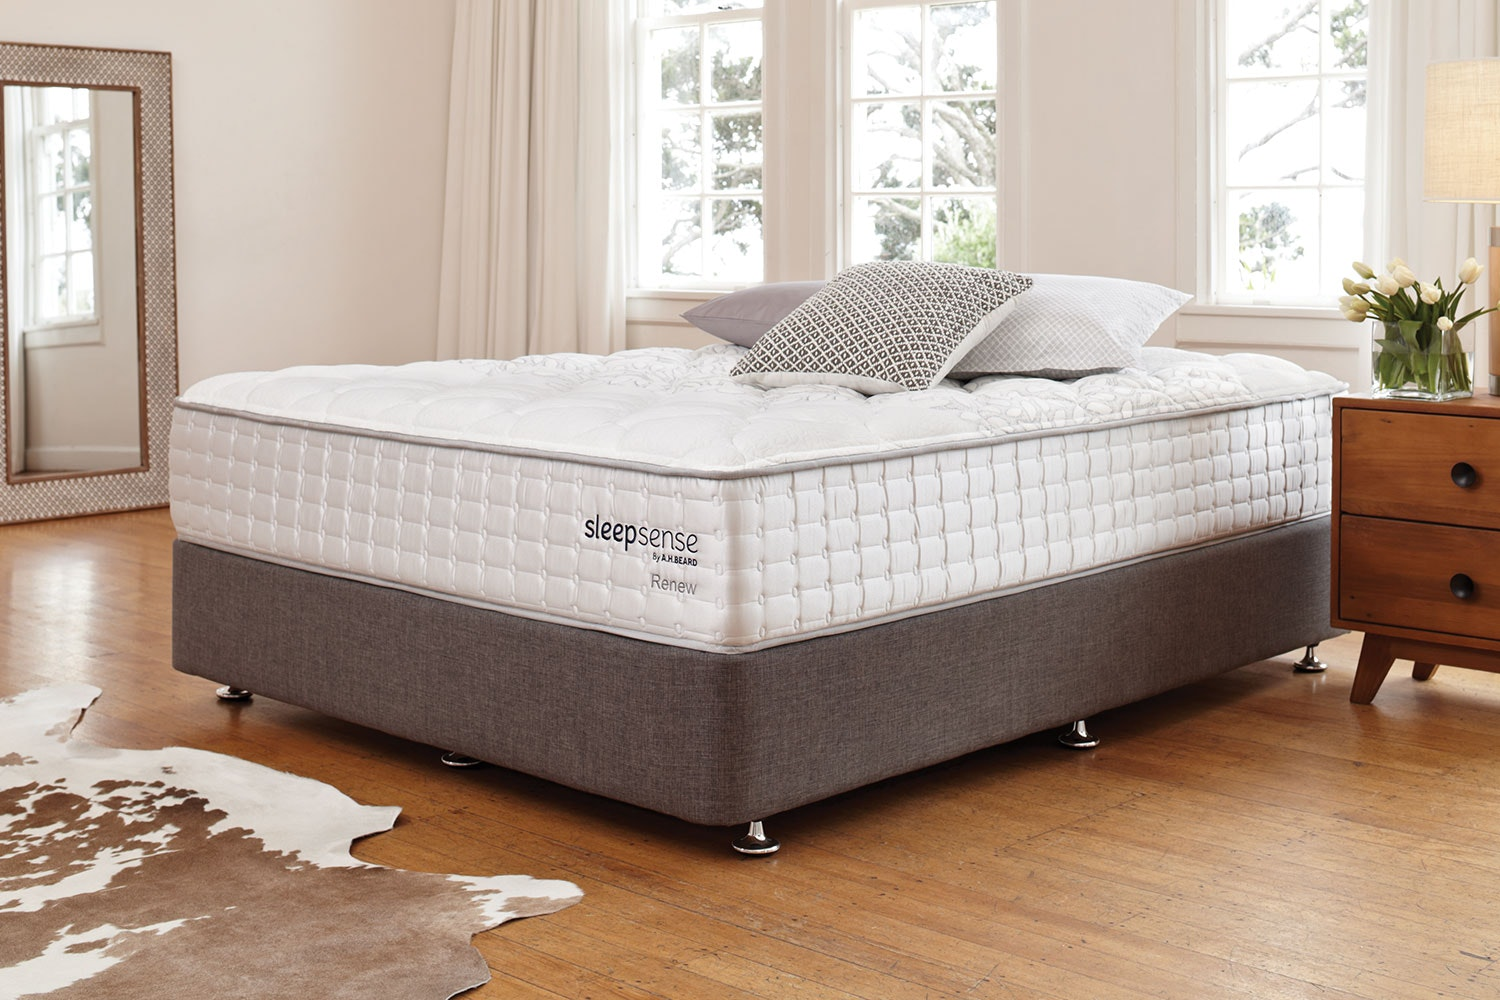 Renew King Single Bed by Sleepsense